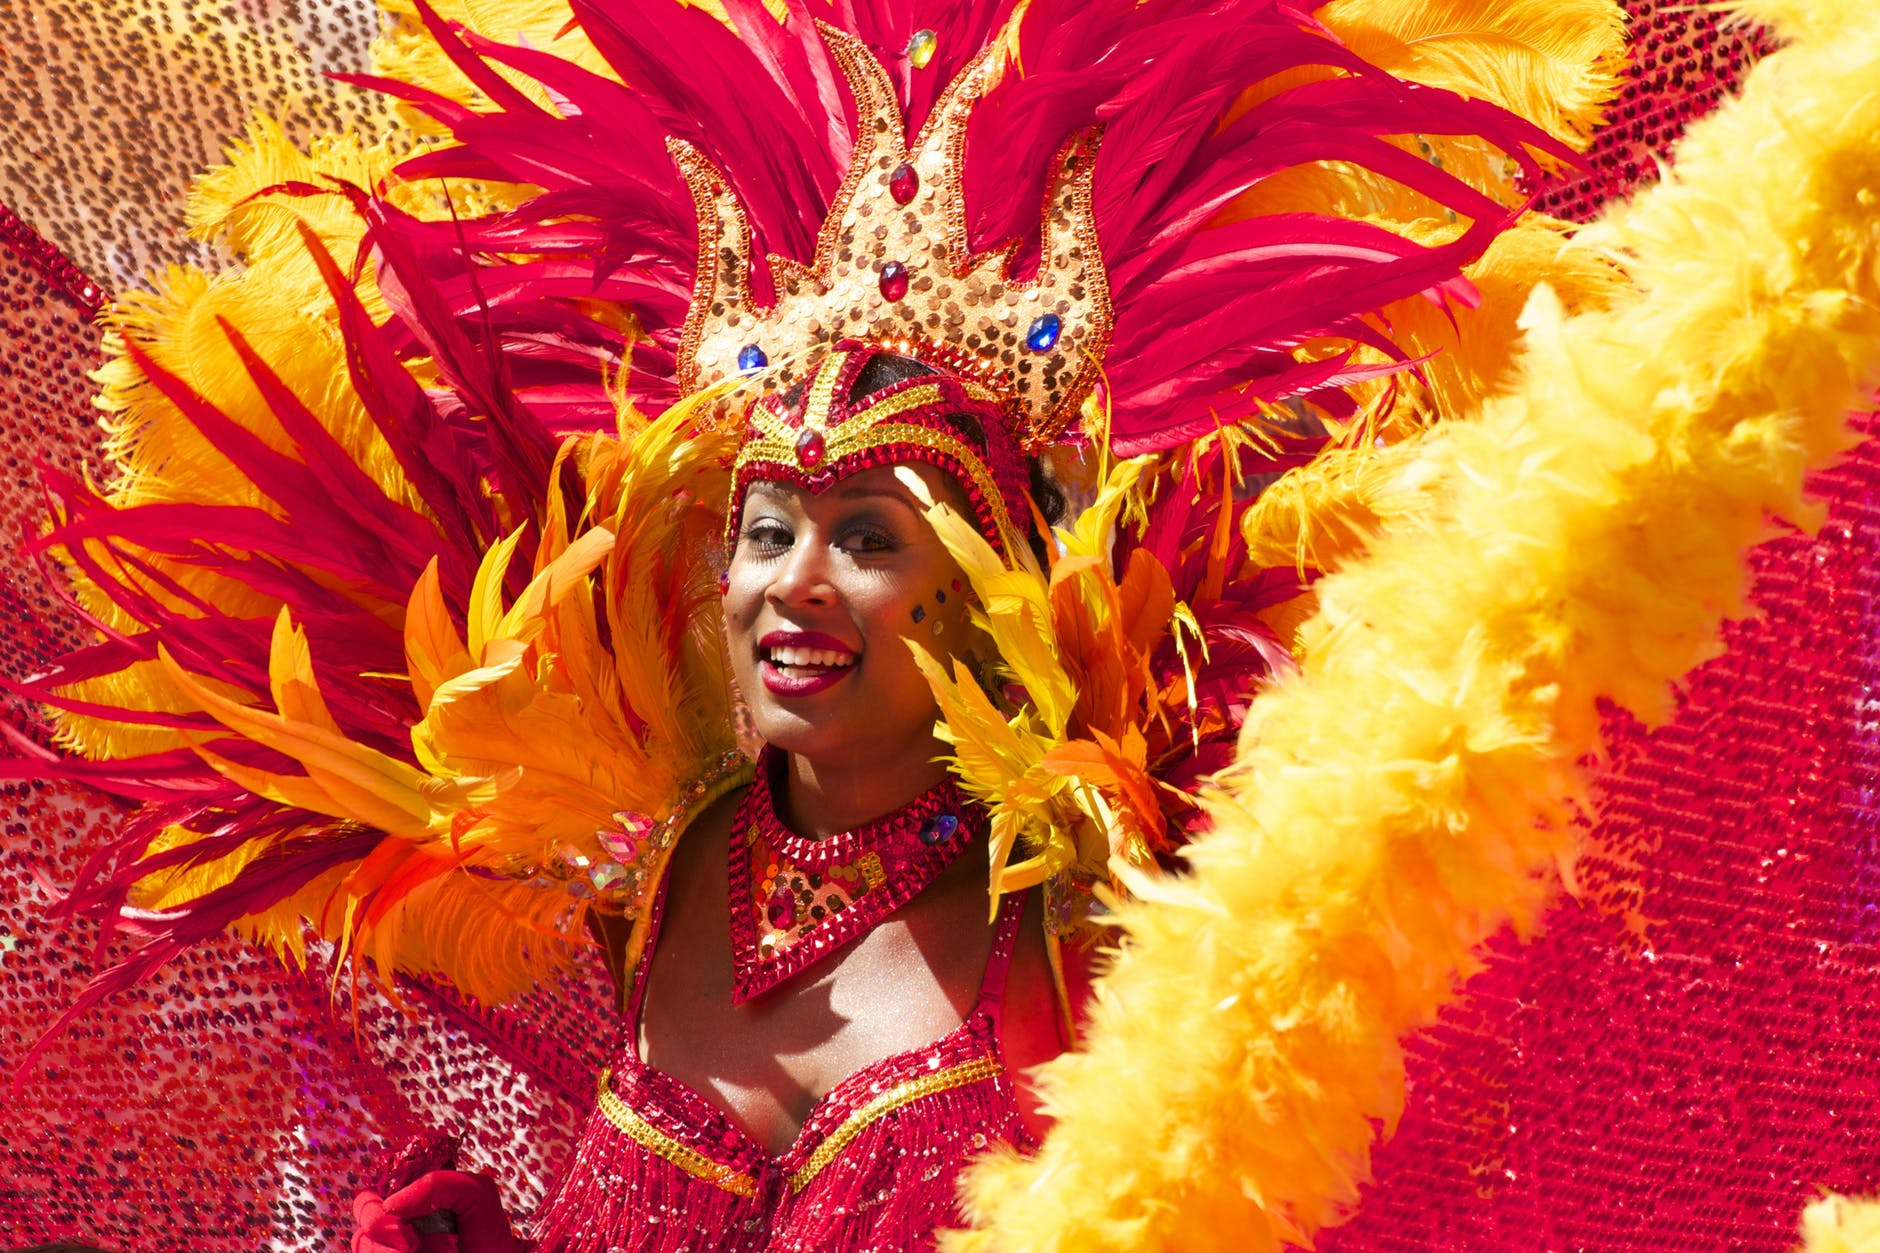 A woman in a red and yellow carnival costume.